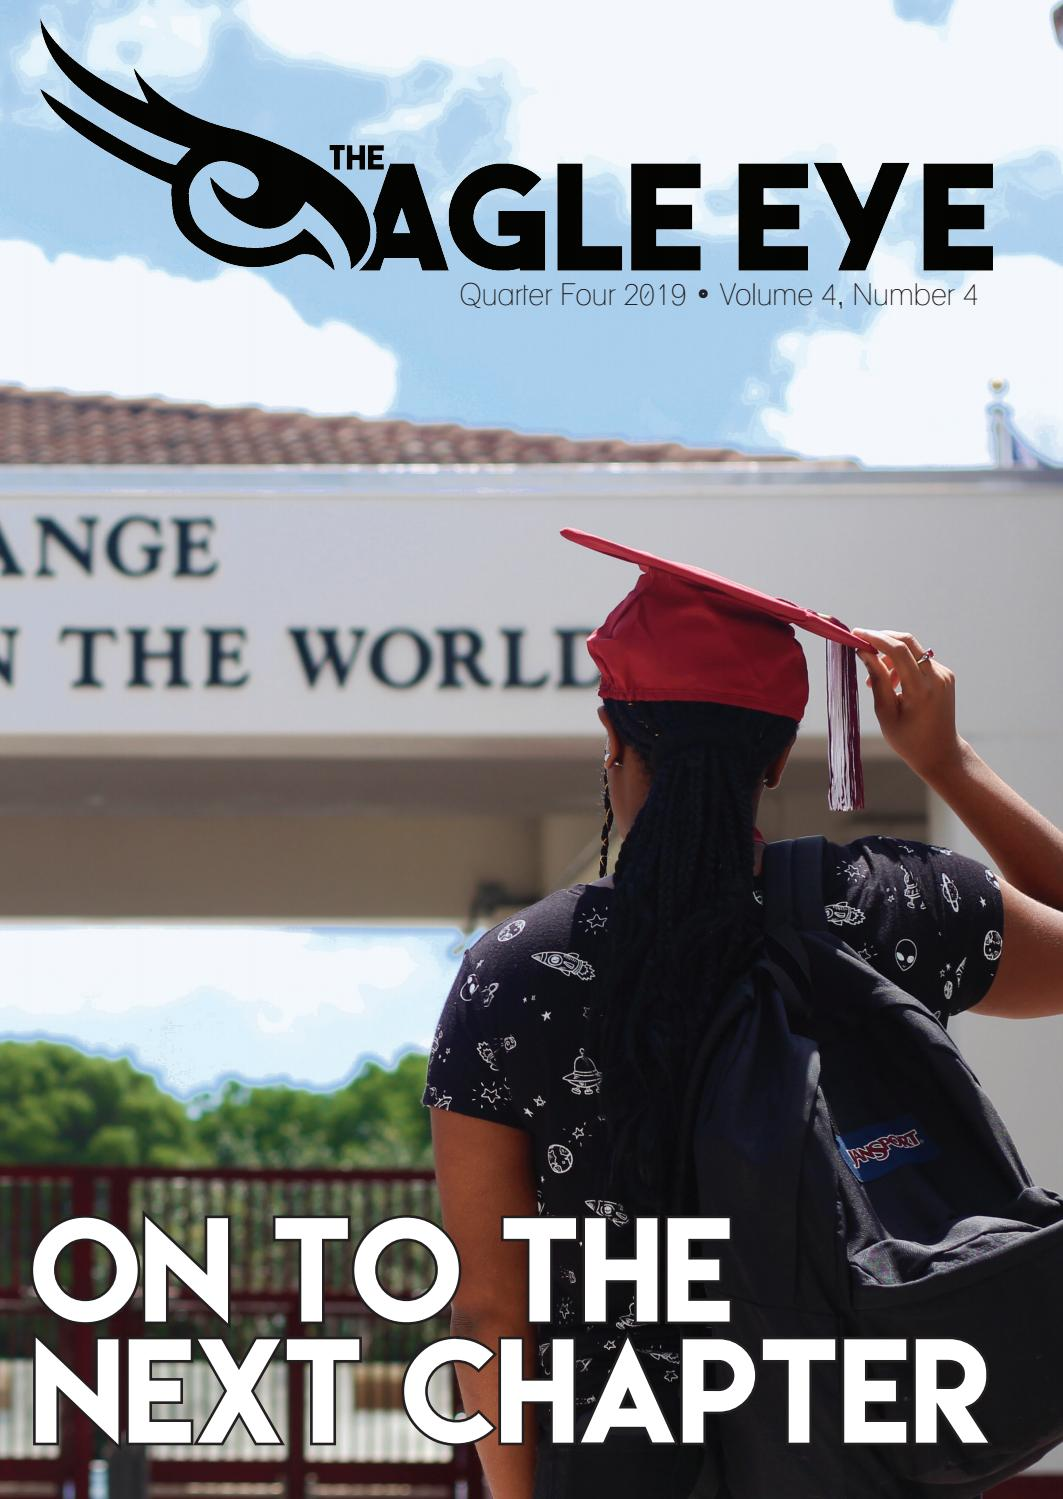 The Eagle Eye - On to the Next Chapter 4th Quarter Issue by The